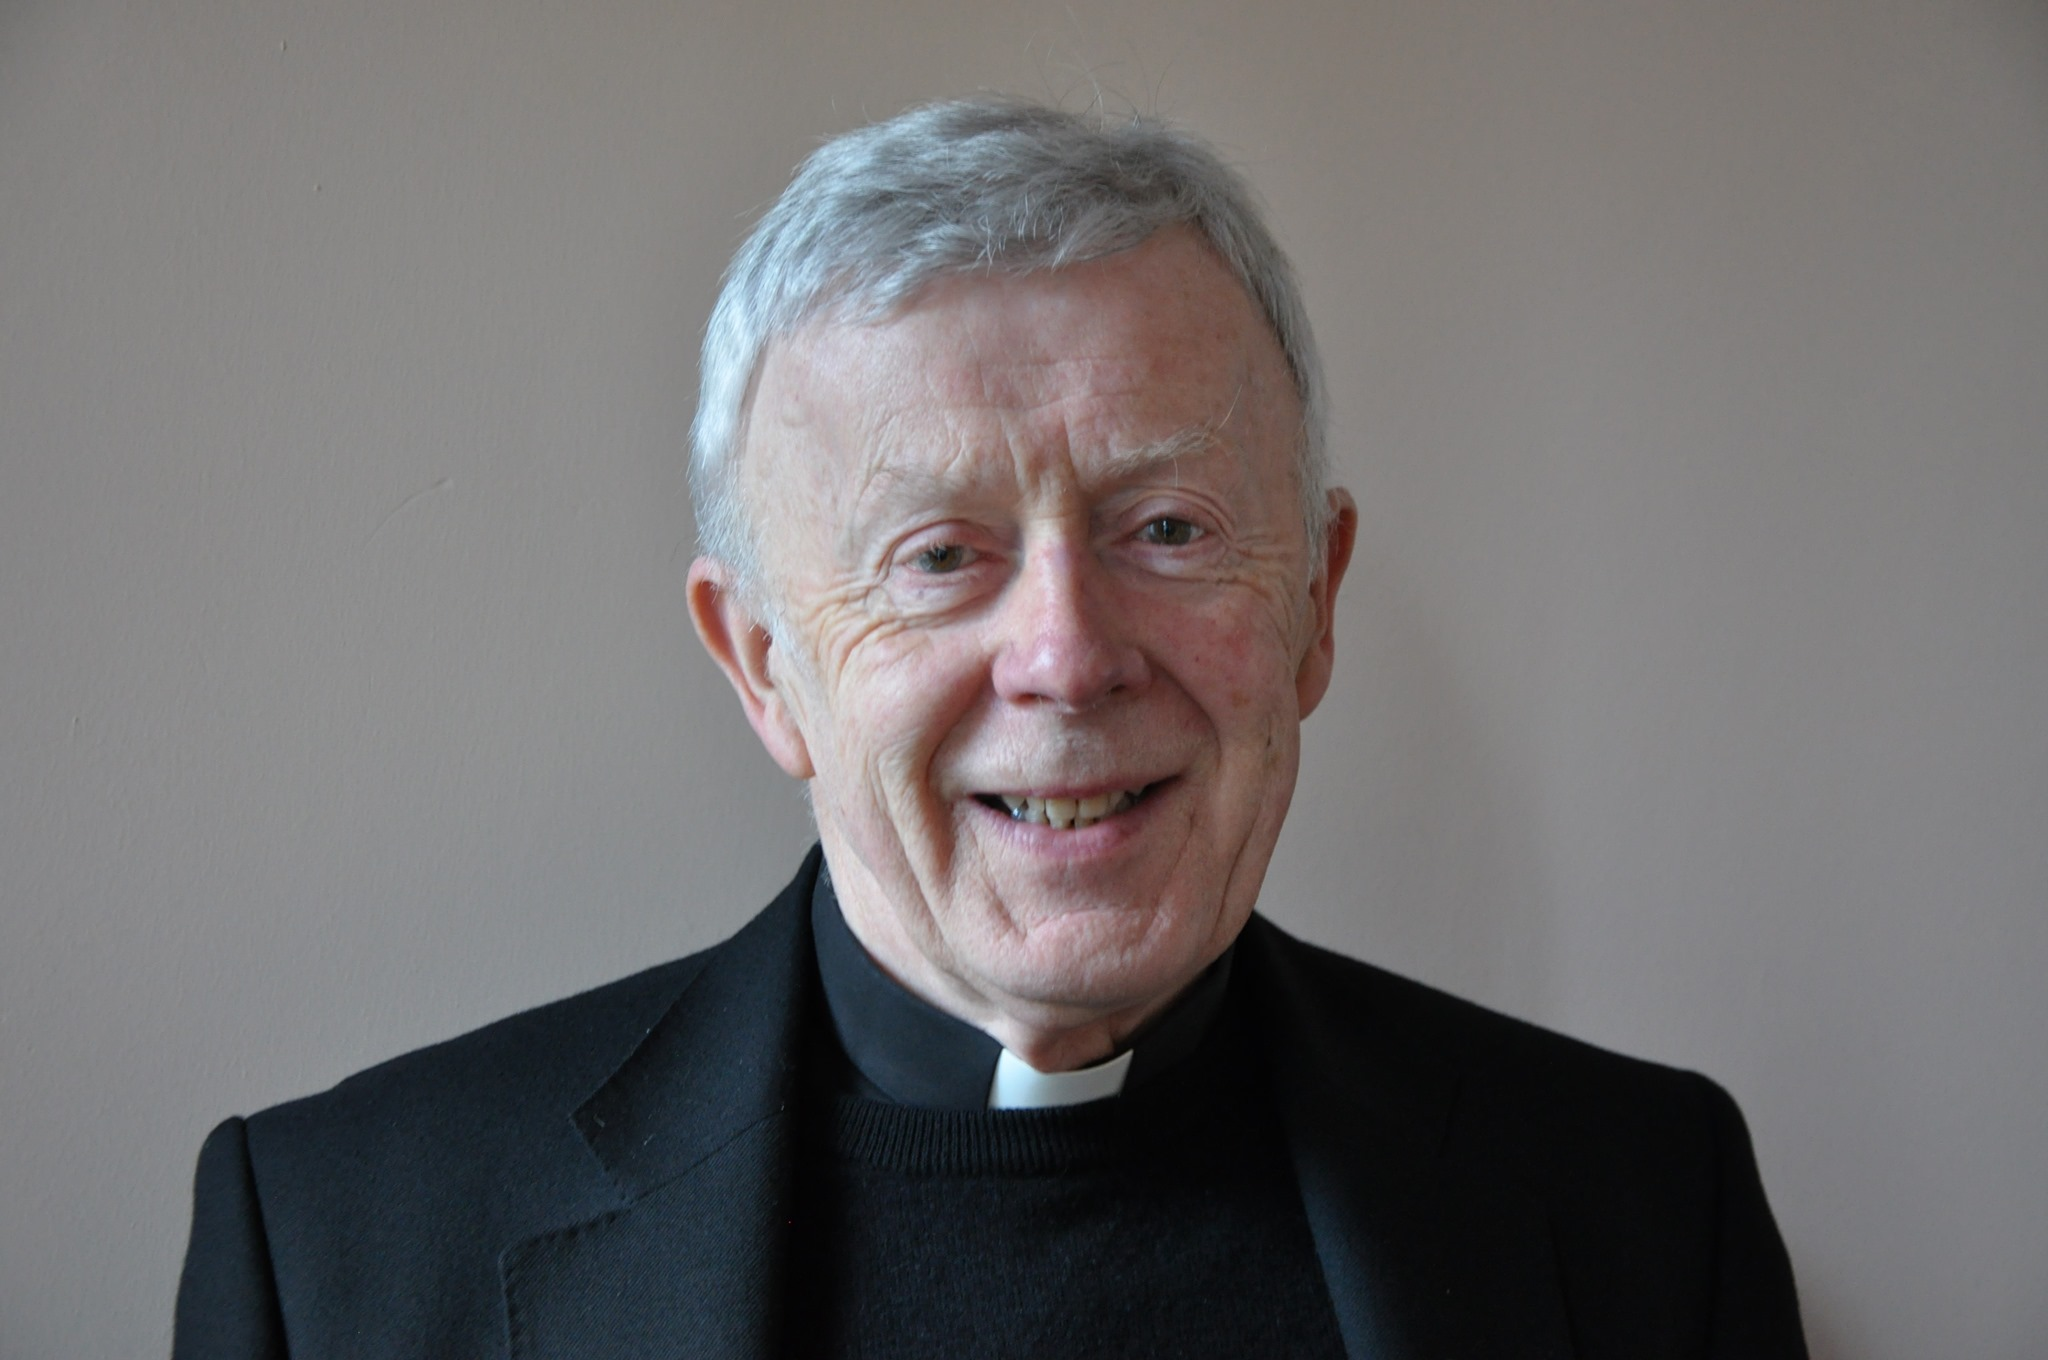 Archbishop Michael Neary